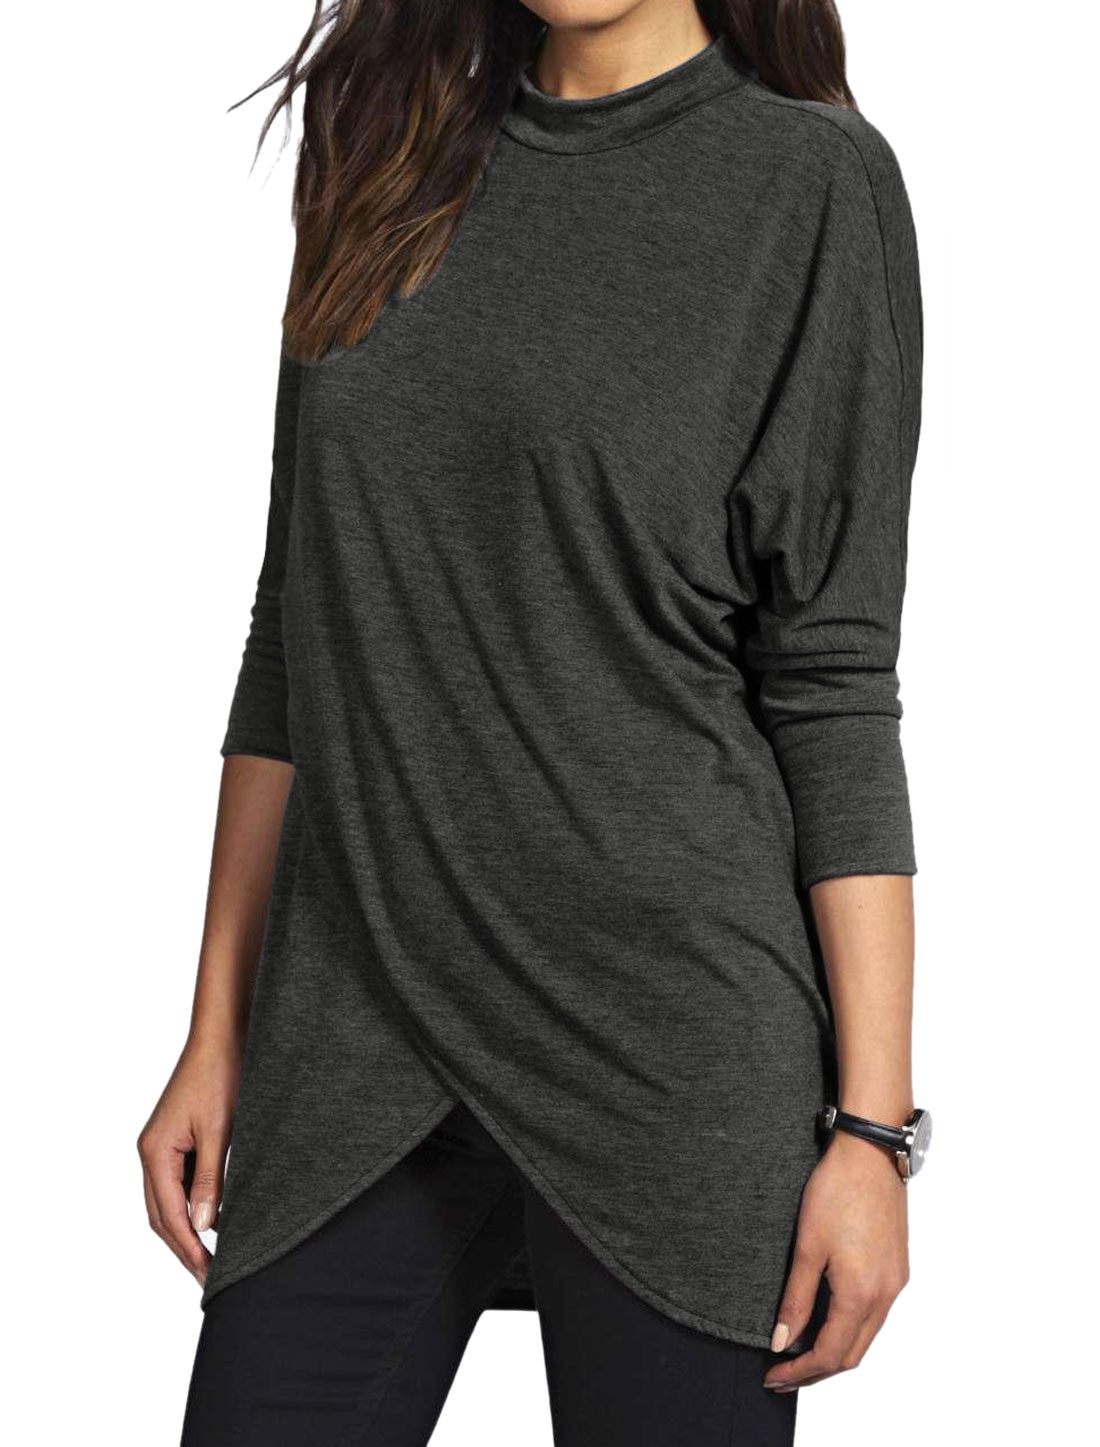 Women Mock Neck Tulip Front Batwing Sleeves Tunic Top Gray L